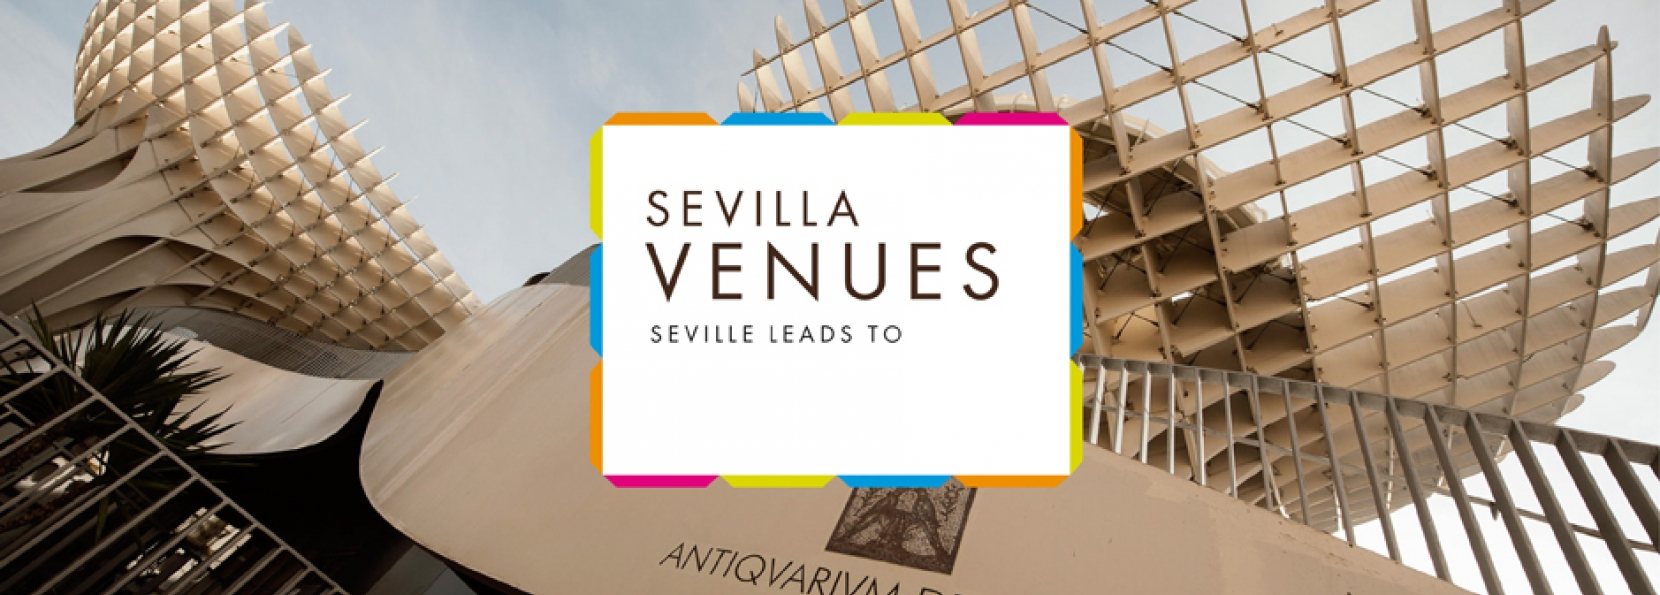 Seville leads to